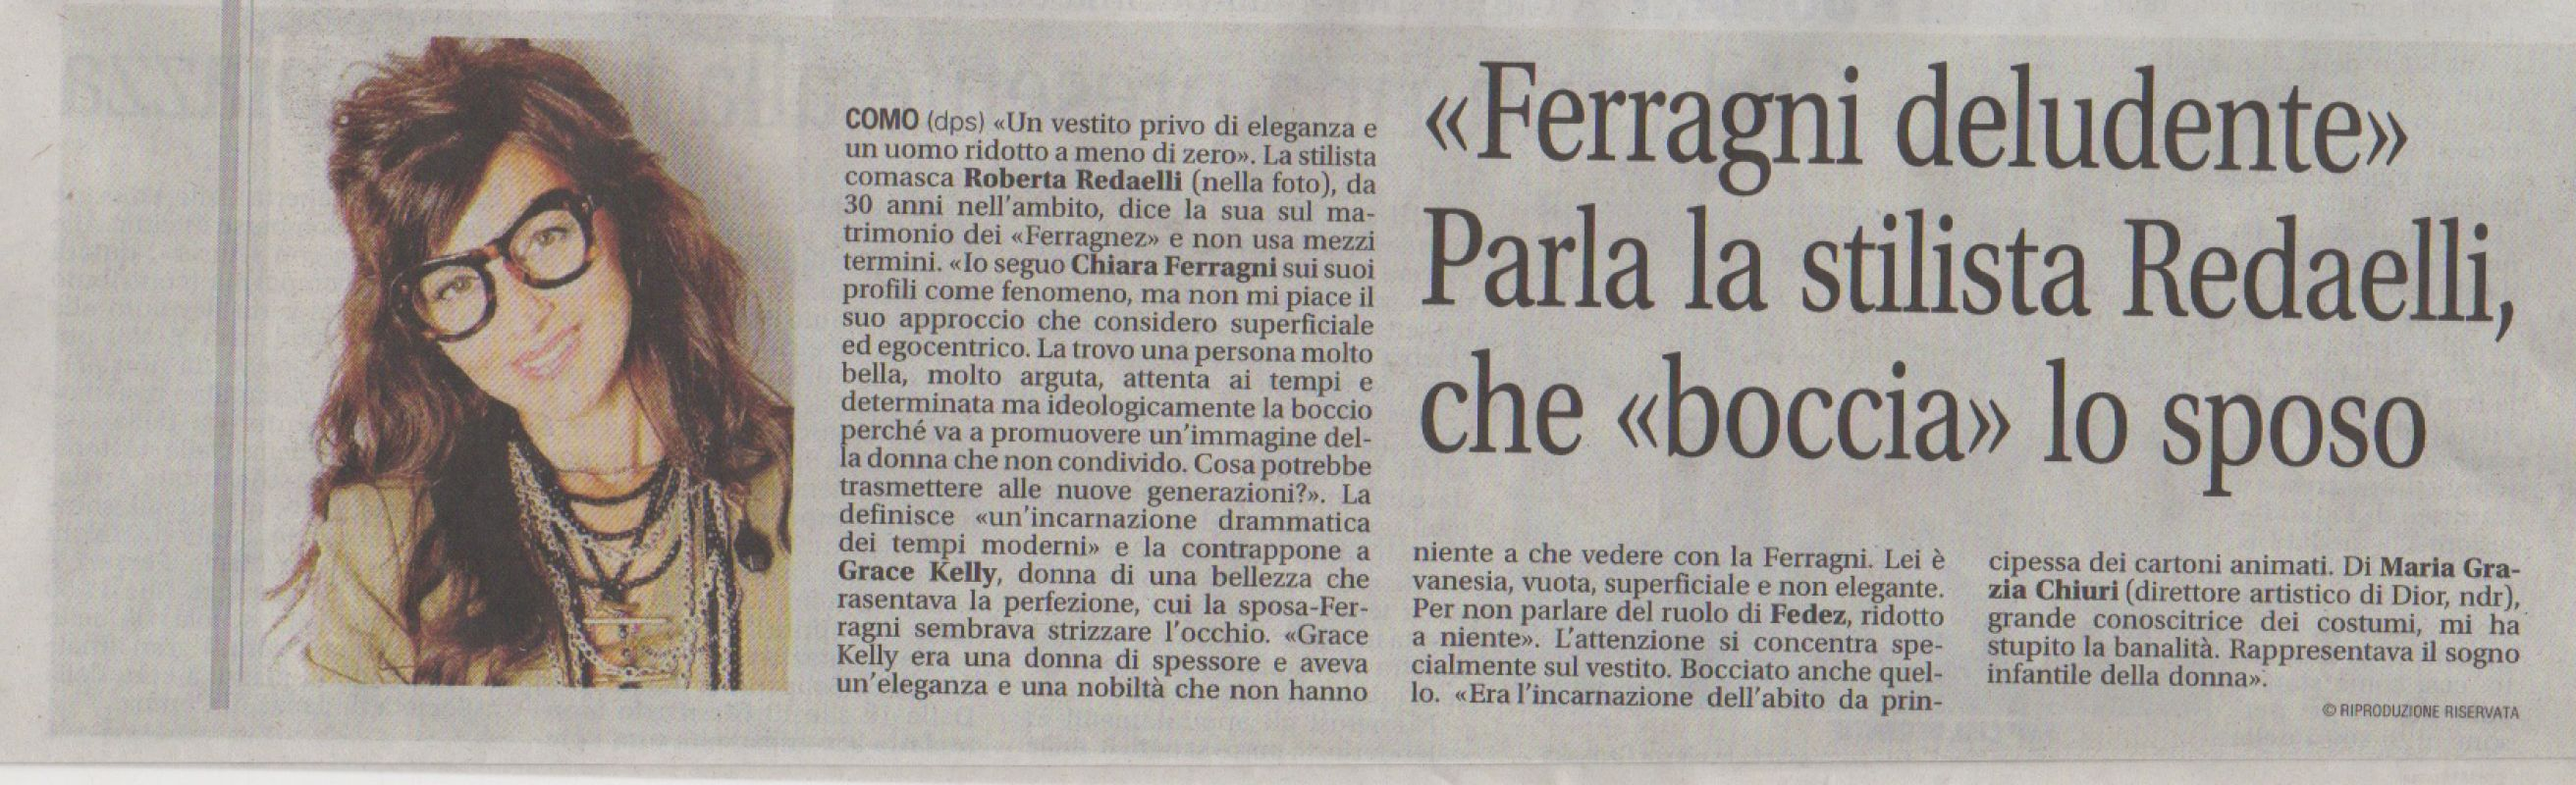 Il giornale di Cantù 8th September 2018 Roberta Redaelli